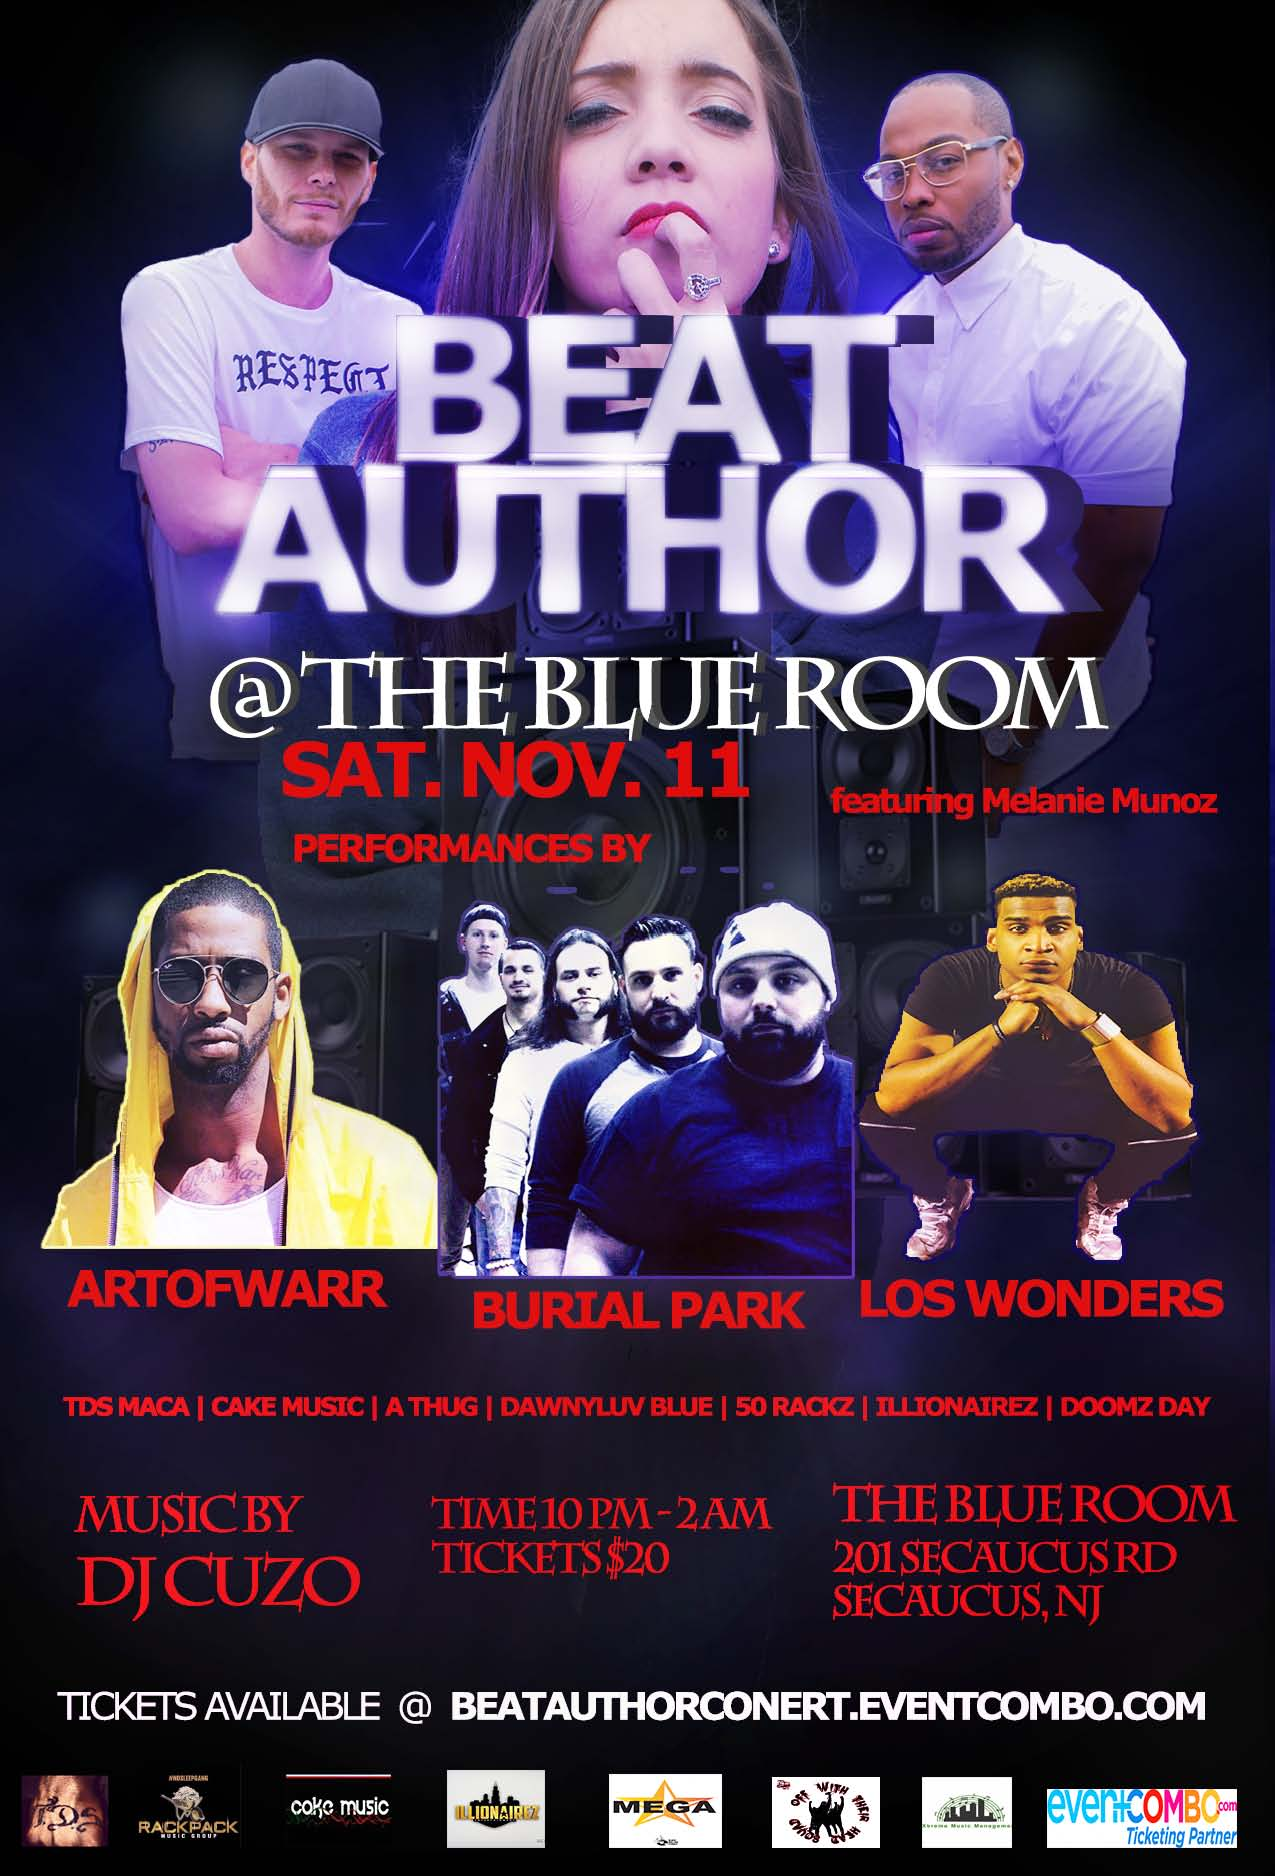 Beat Author Concert Featuring Melanie Munoz, Art of Warr, Burial Park, Los Wonders, Music by DJ Cuzo & DJ Cazzarelli